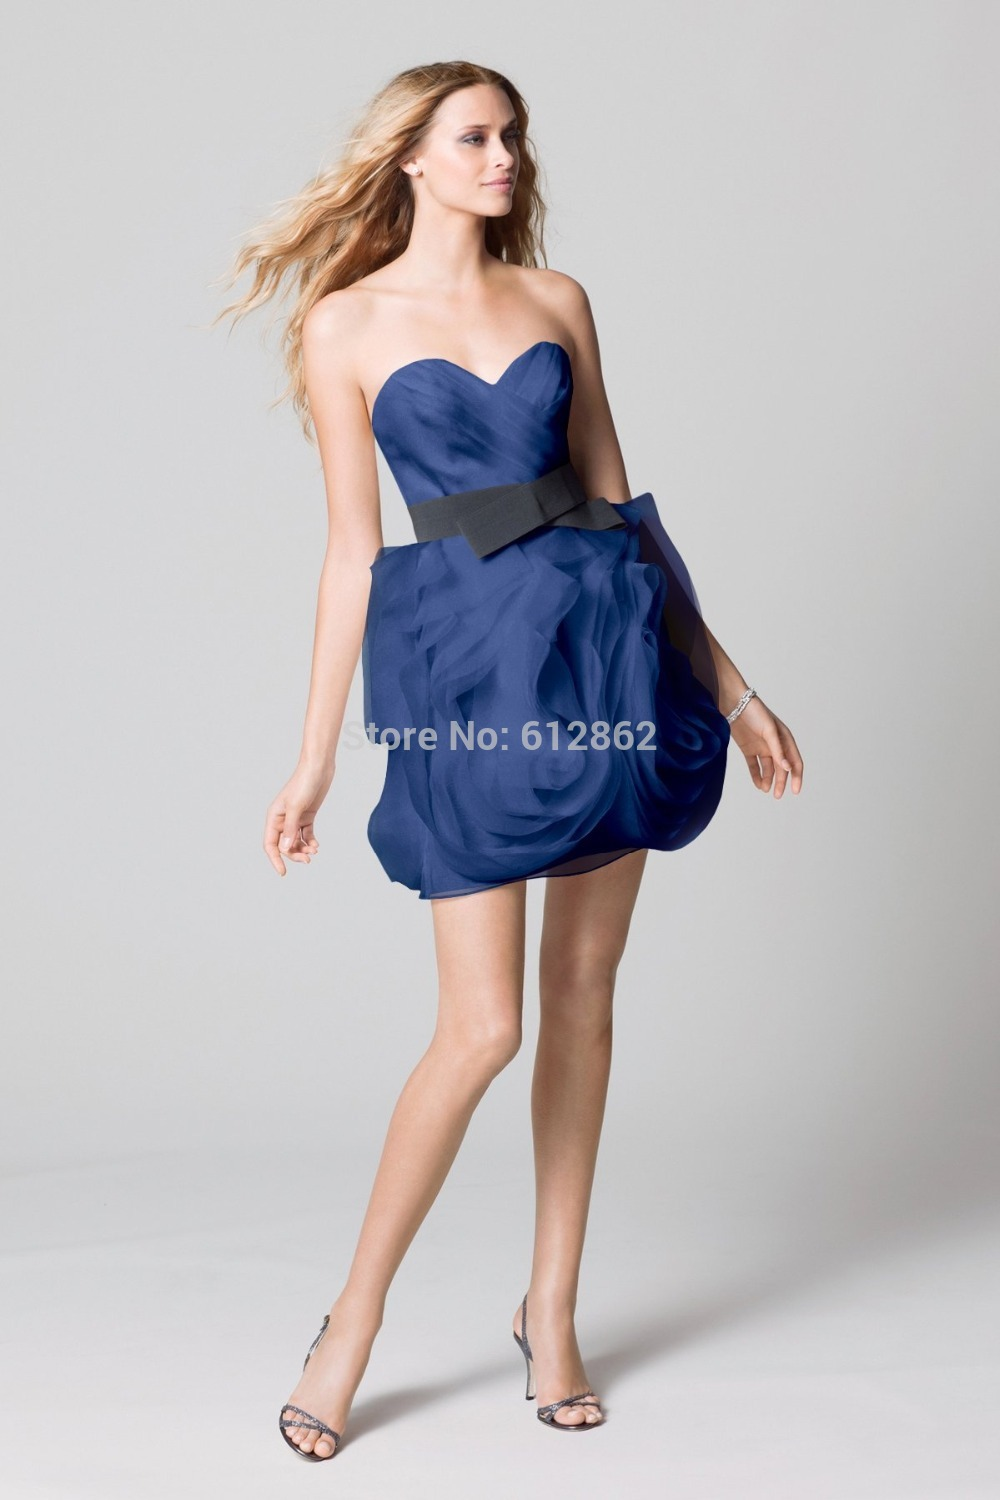 Collection Blue Dresses For Teens Pictures - The Fashions Of Paradise